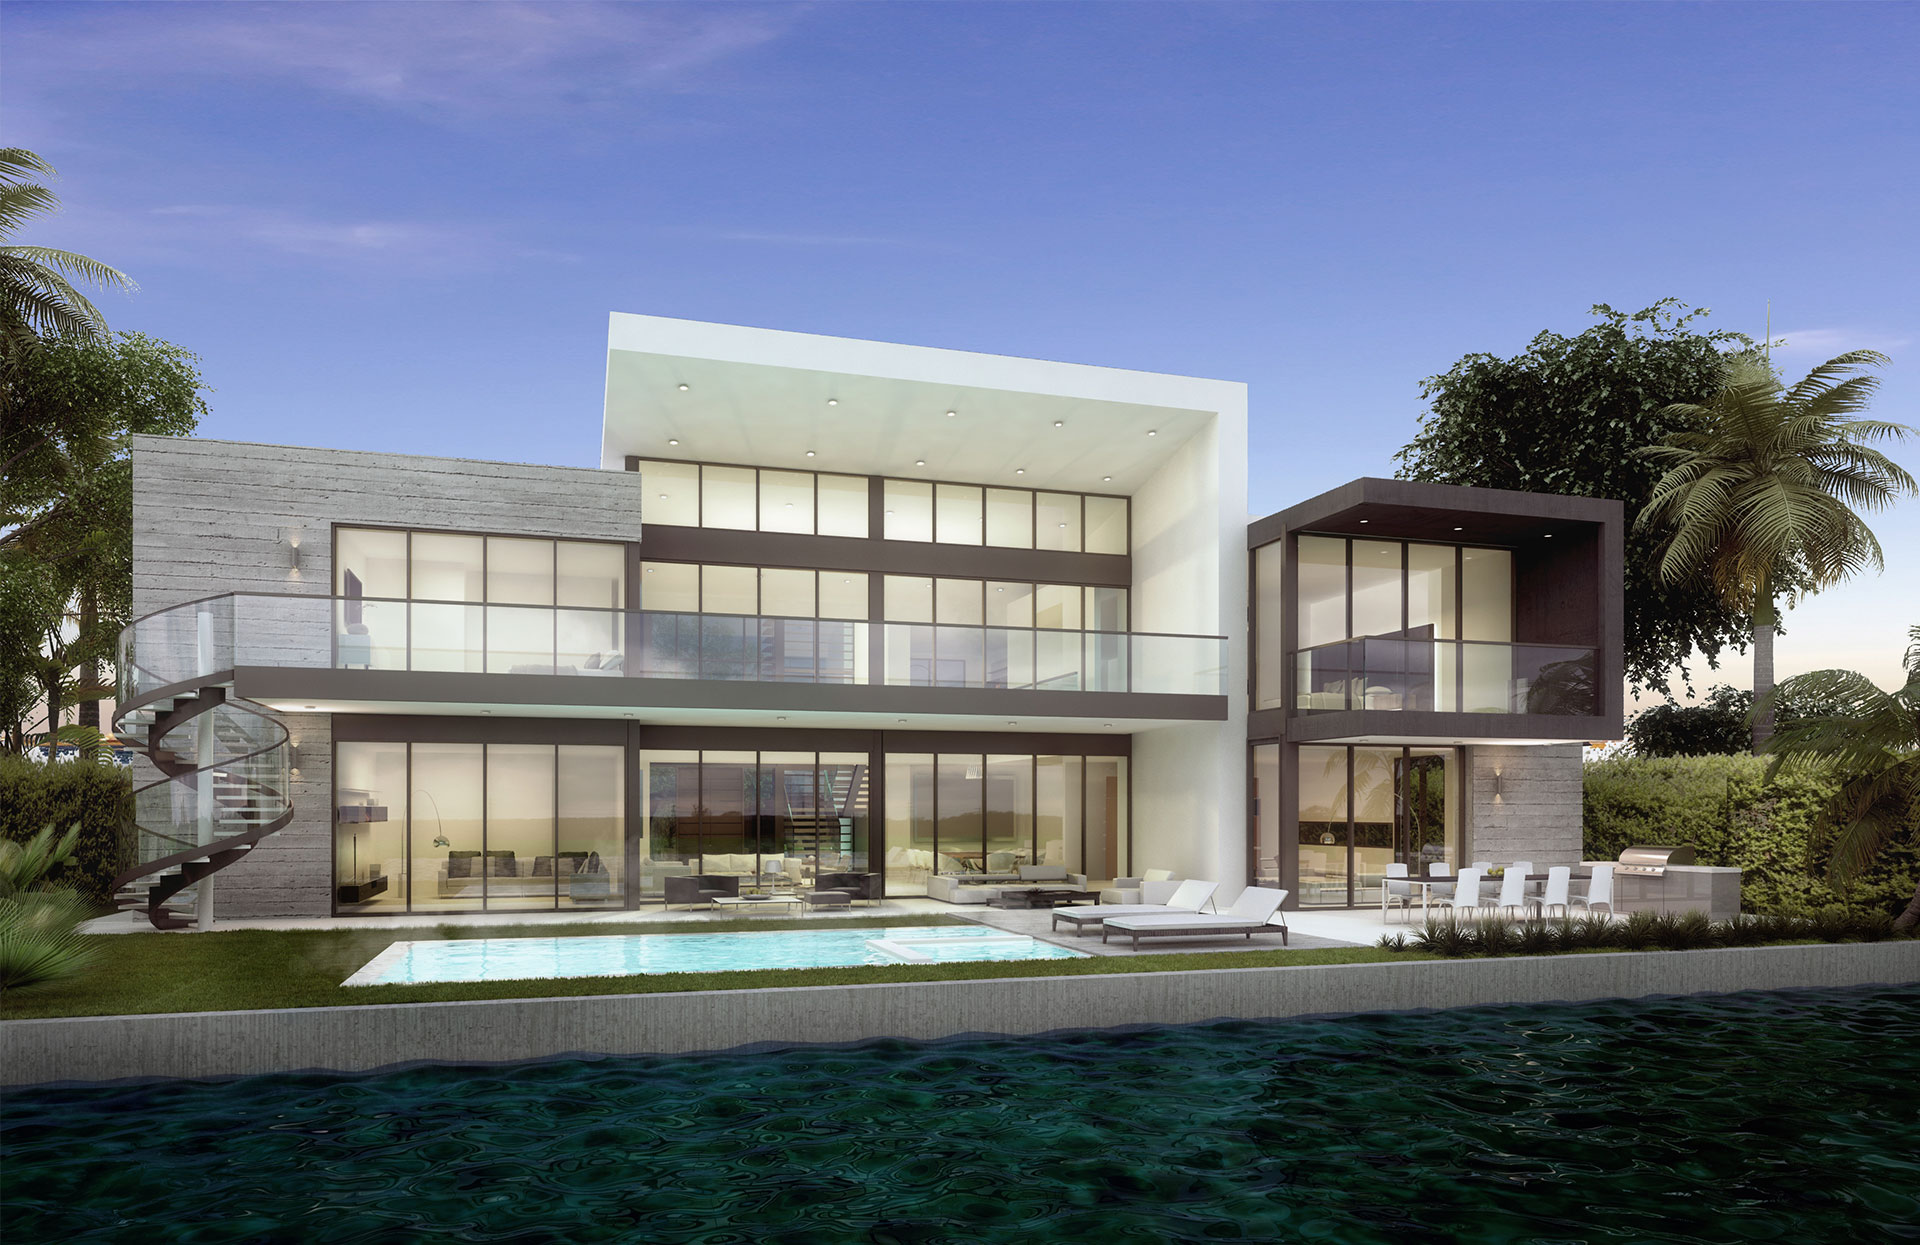 Back View architecture project at Mola Ave, Fort Lauderdale